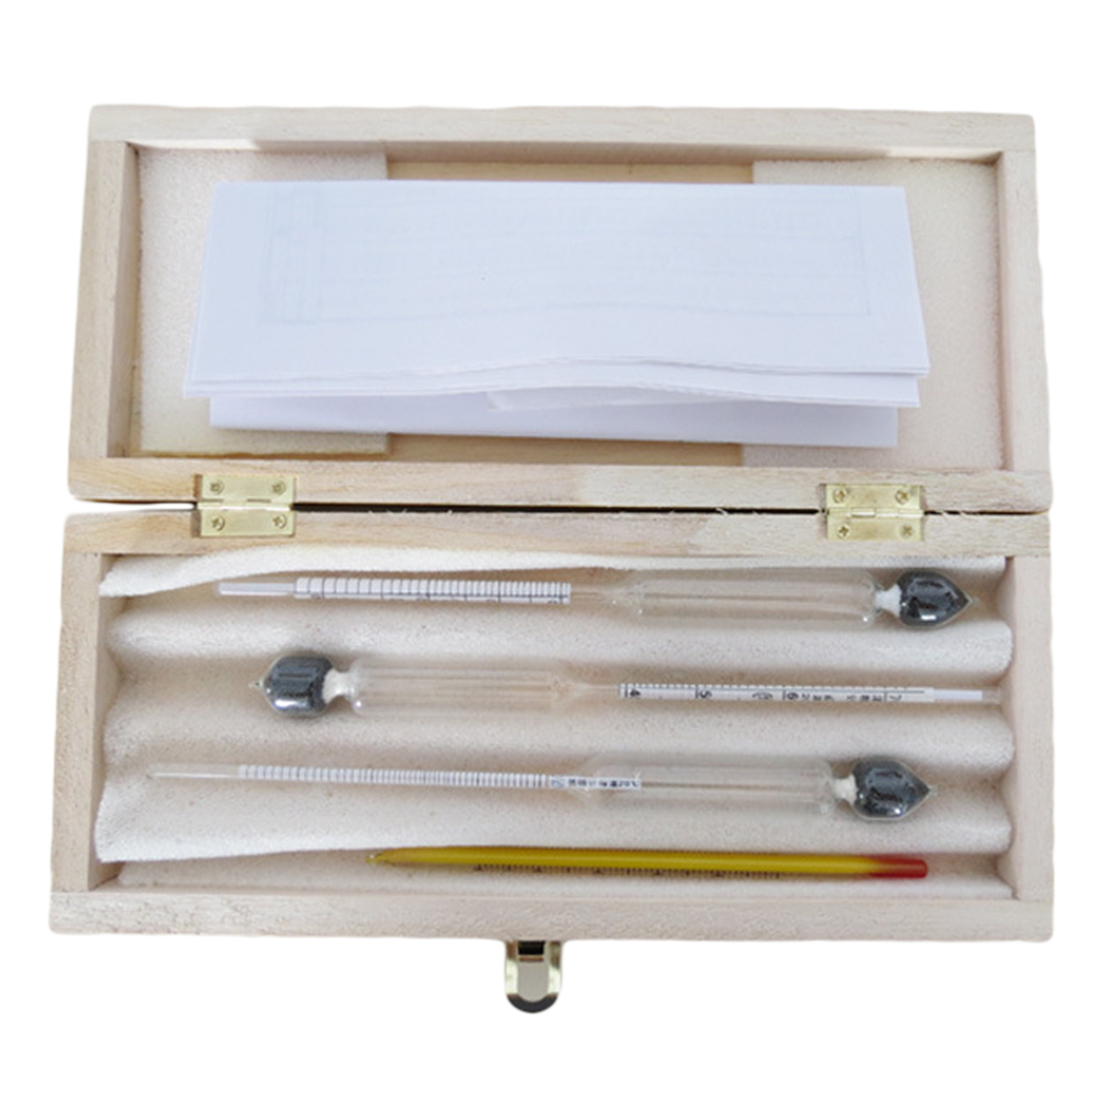 3pcs/Set Alcoholmeter Alcohol Meter wine Concentration Meter Alcohol Instrument Hydrometer Tester